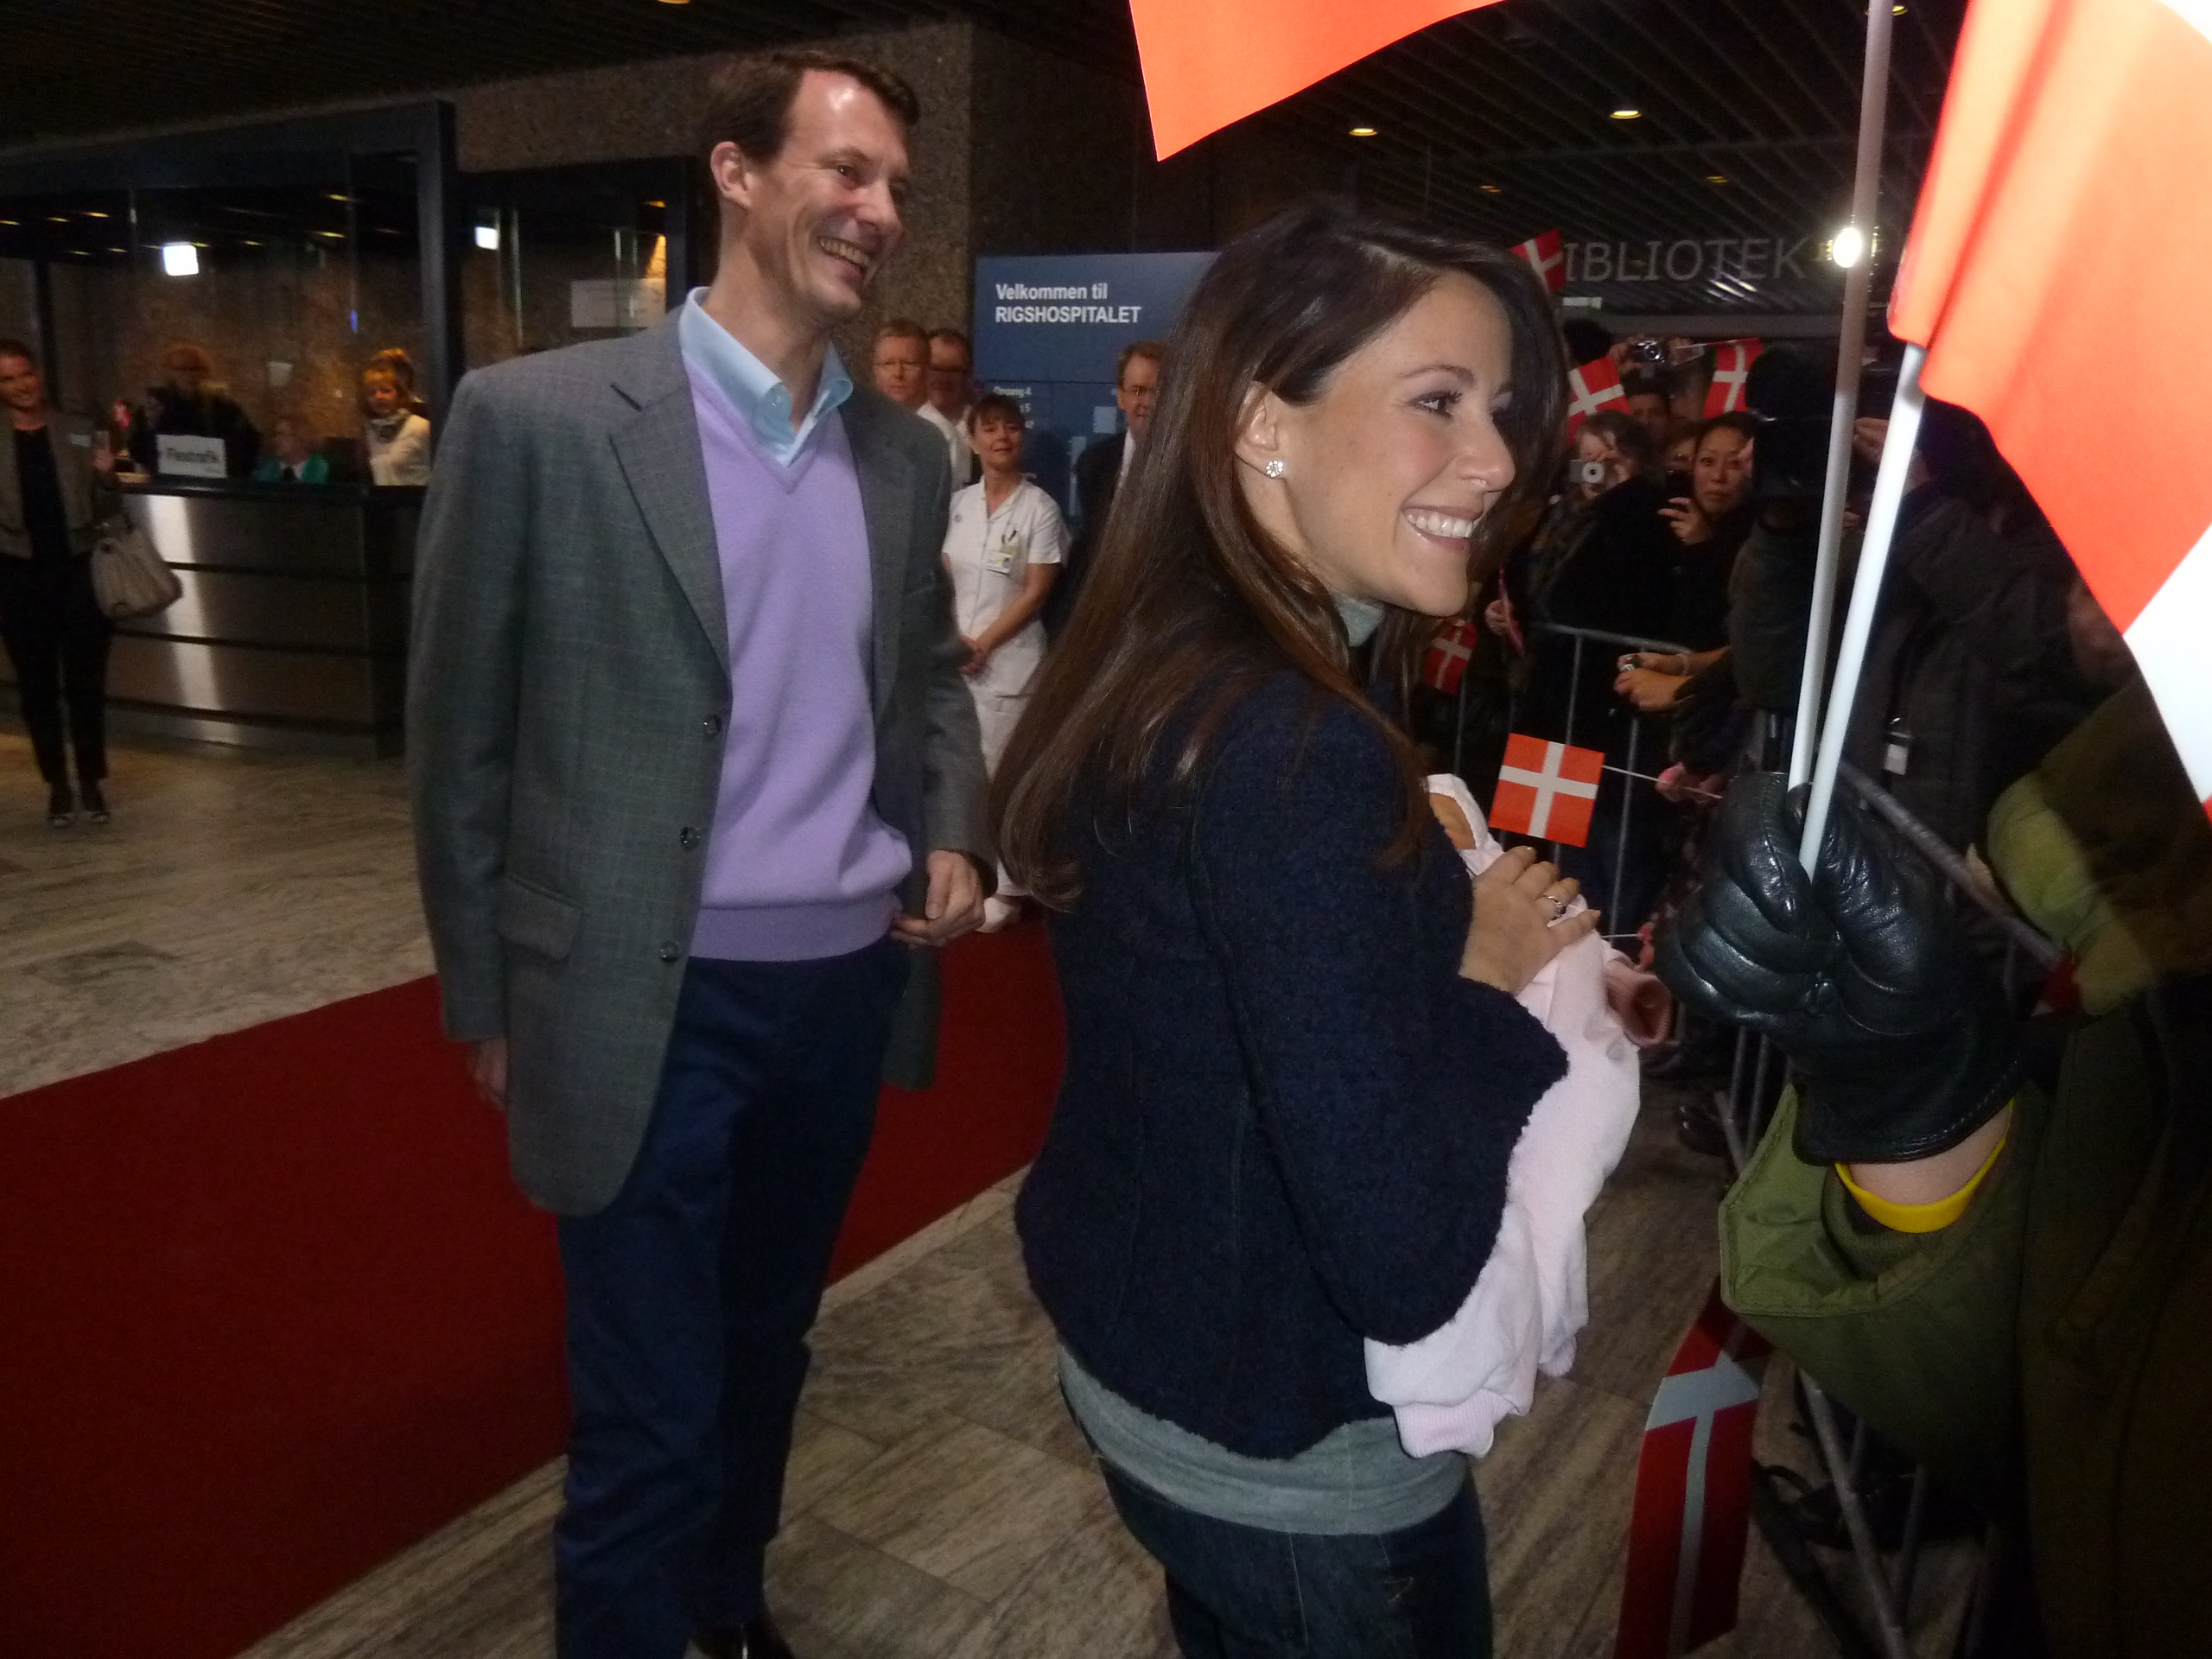 Prince Joachim and Princess Mary